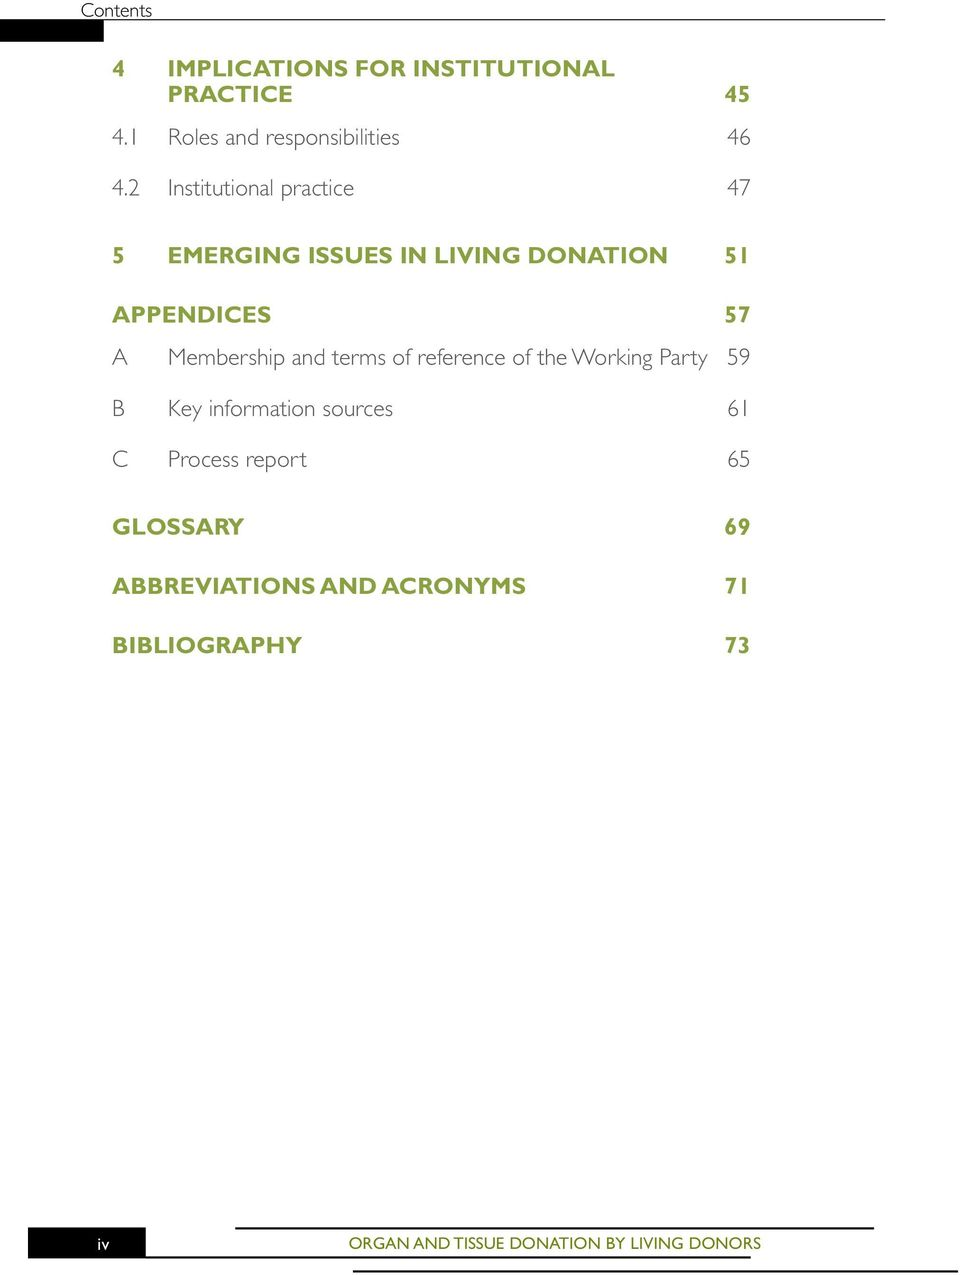 2 Institutional practice 47 5 Emerging issues in living donation 51 Appendices 57 A